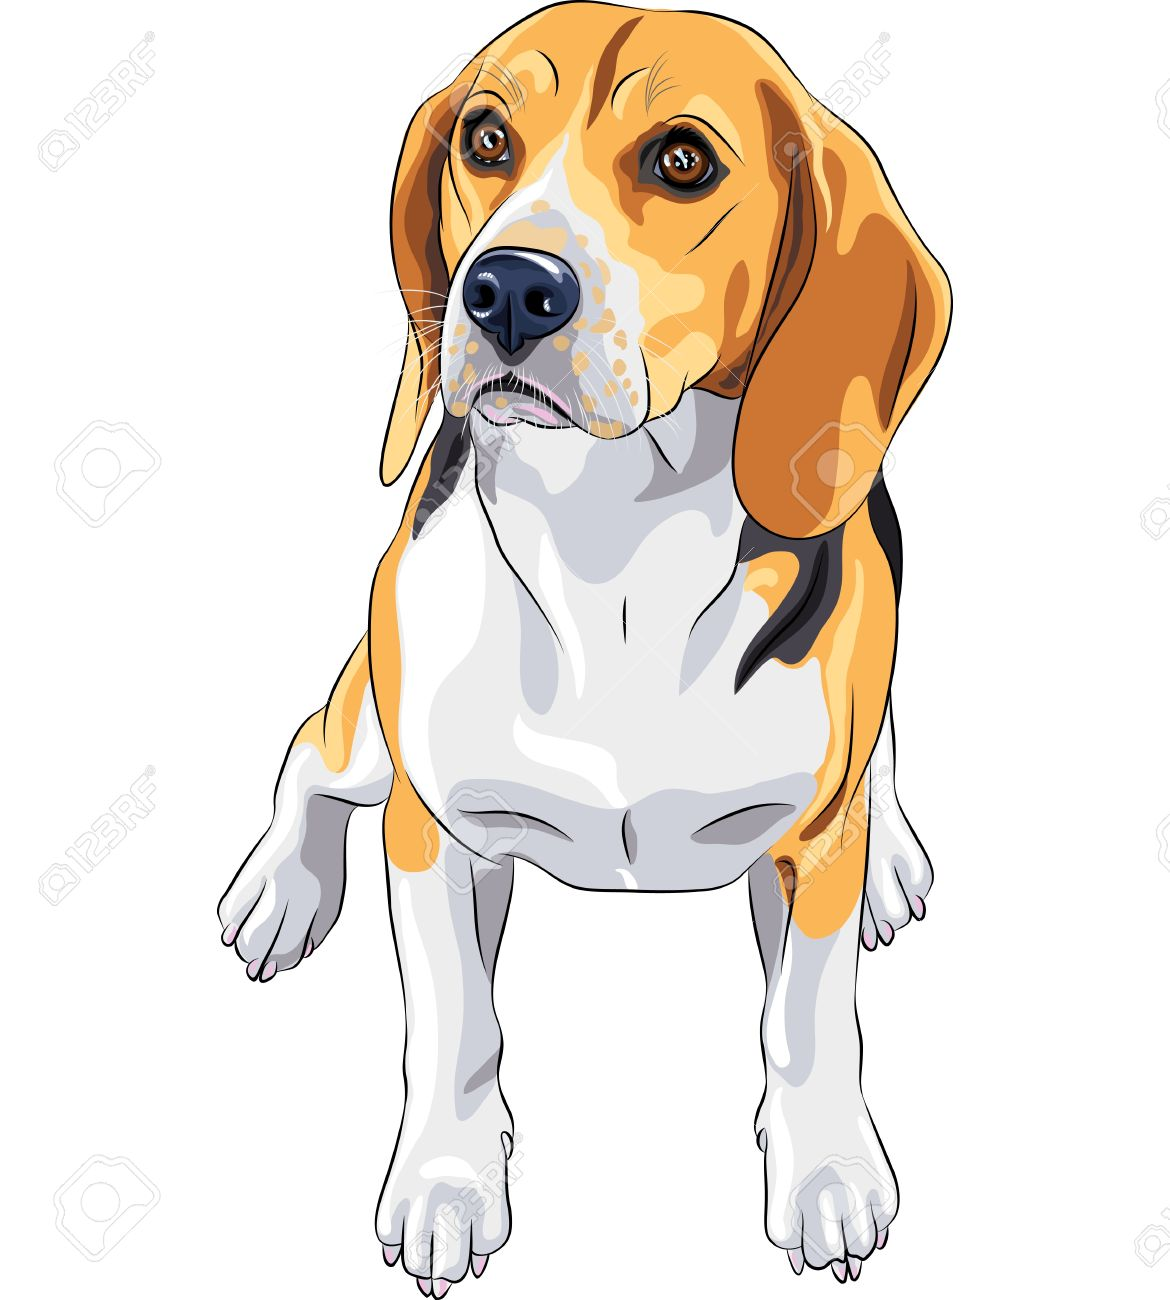 color sketch of the dog Beagle breed sitting Stock Vector - 15322854